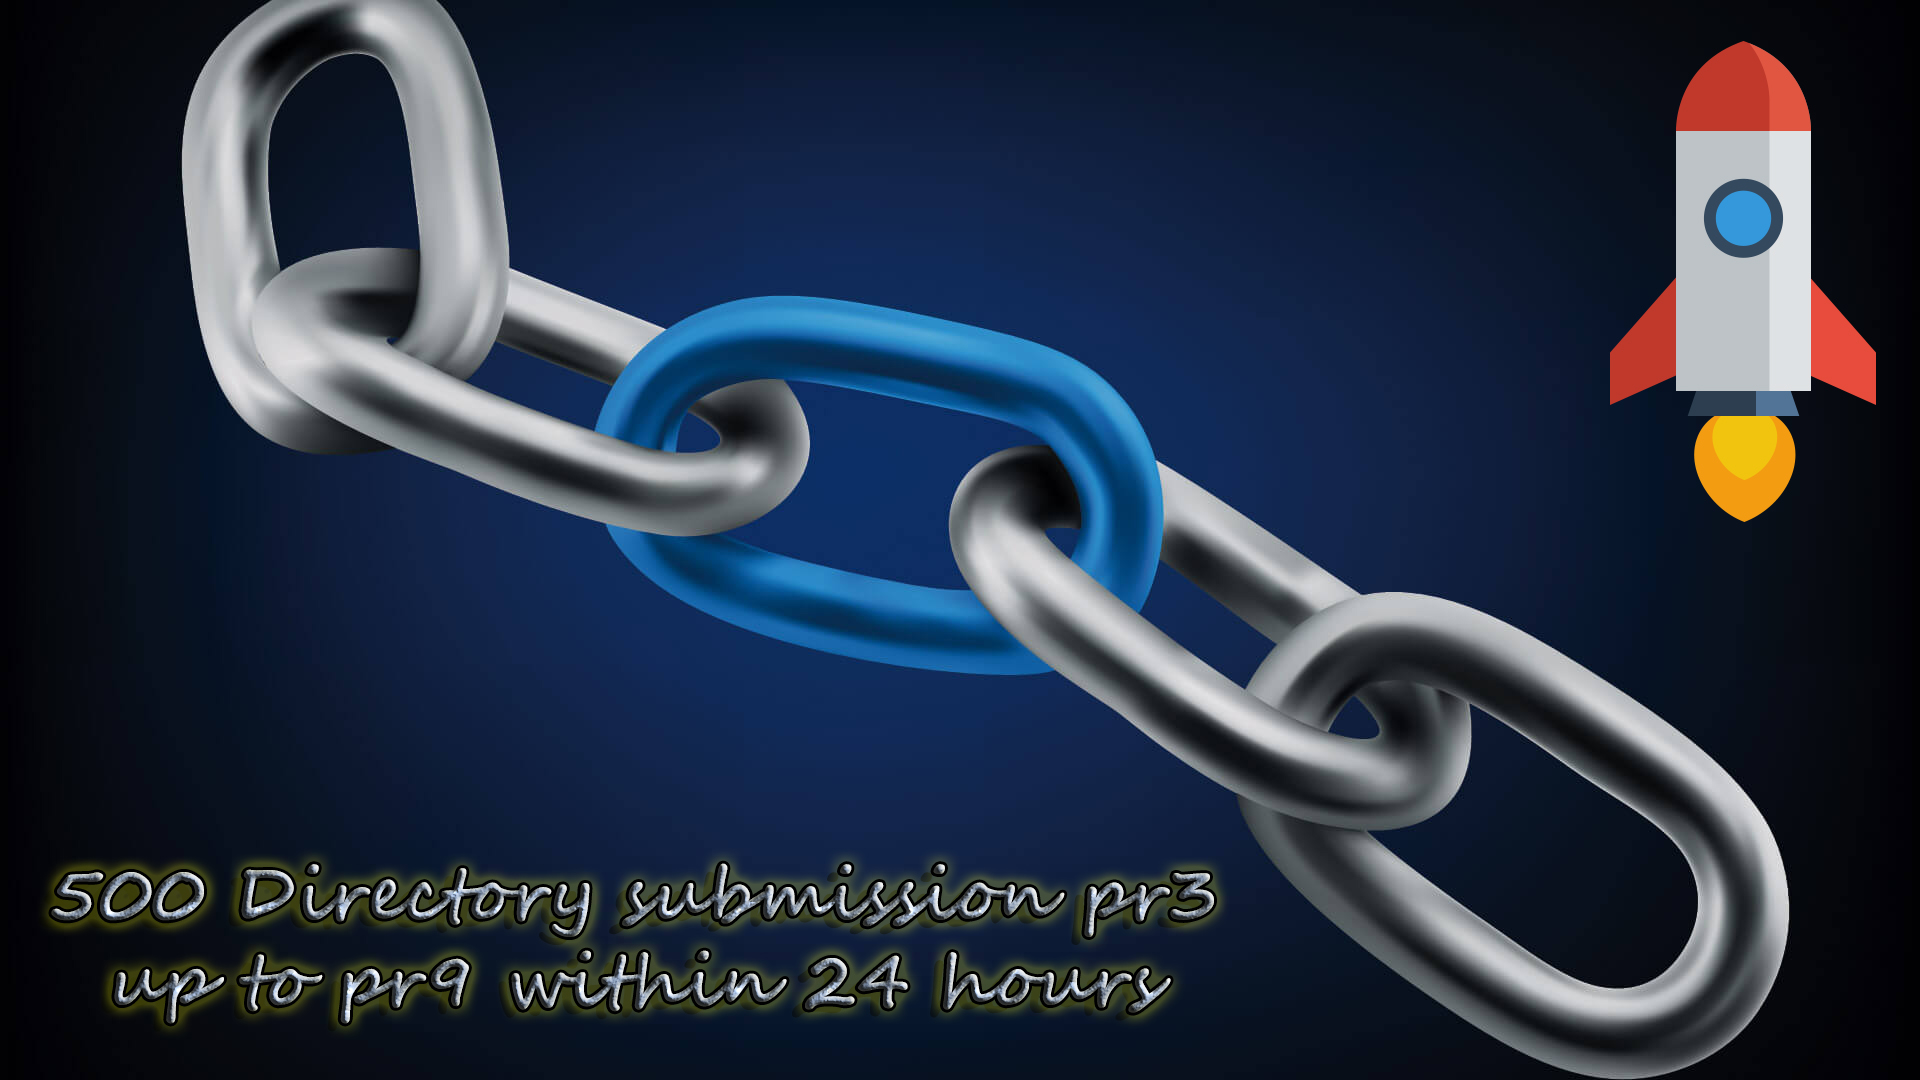 Present Your Sites 500 high quality Directory submission pr3 to pr9